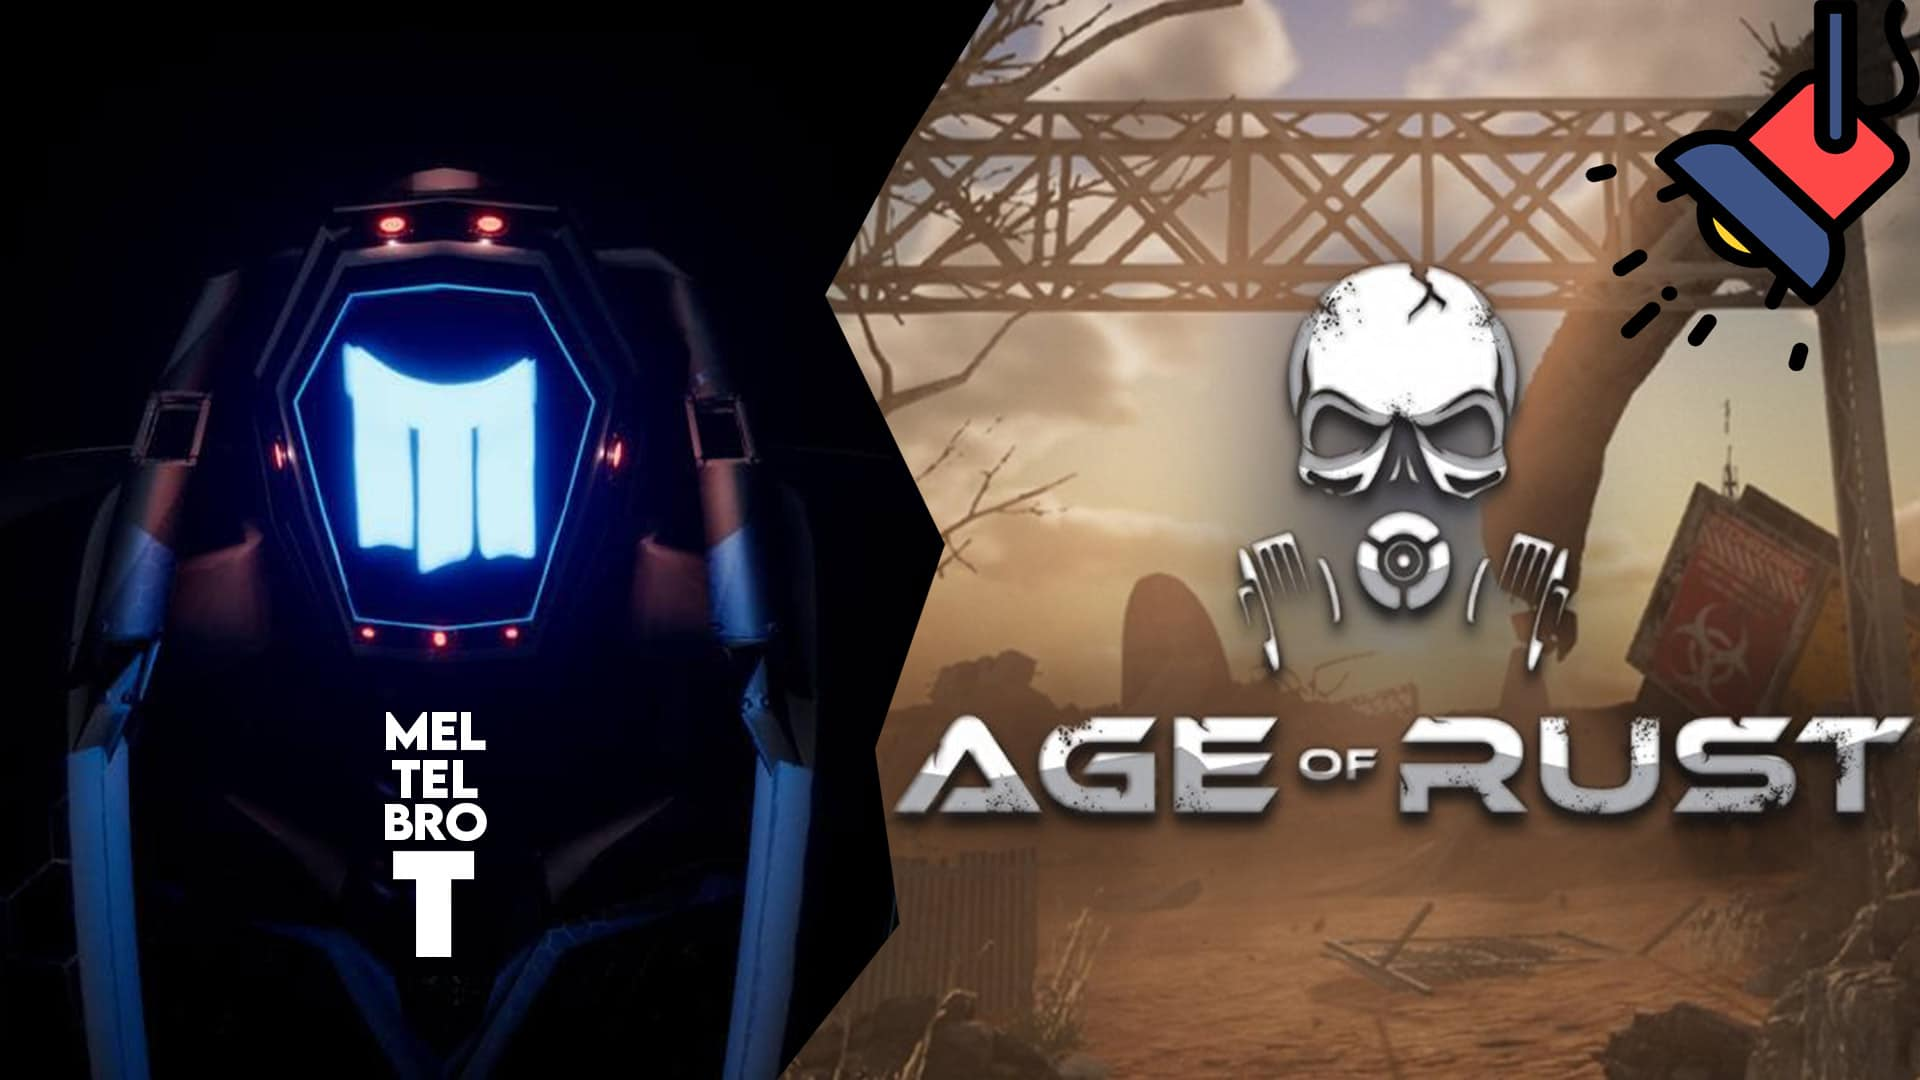 Age of rust interview